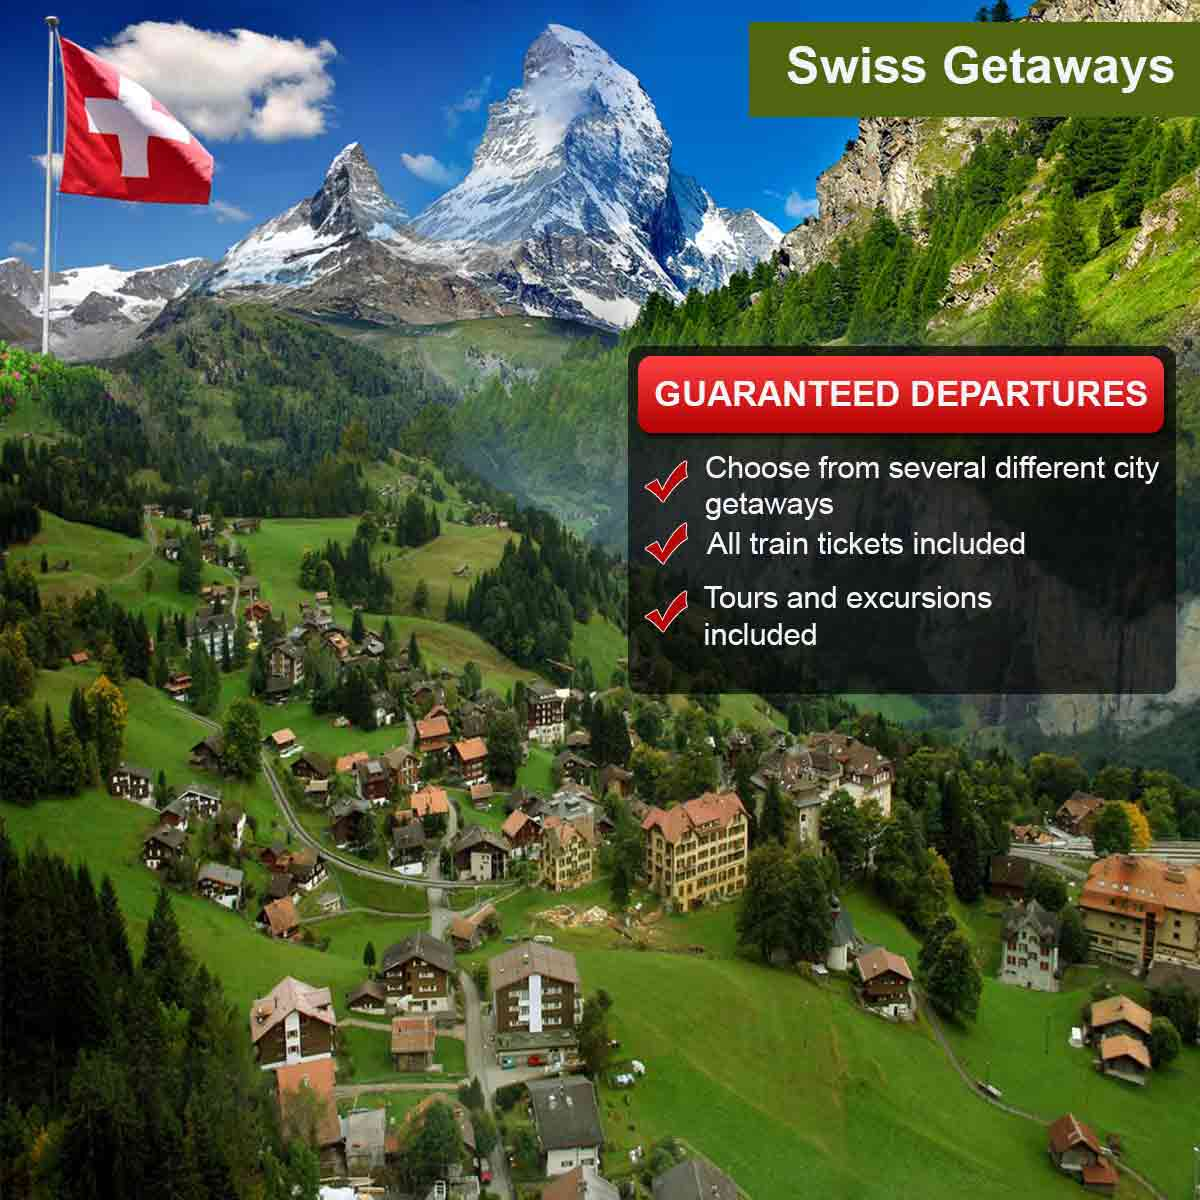 Swiss getaways